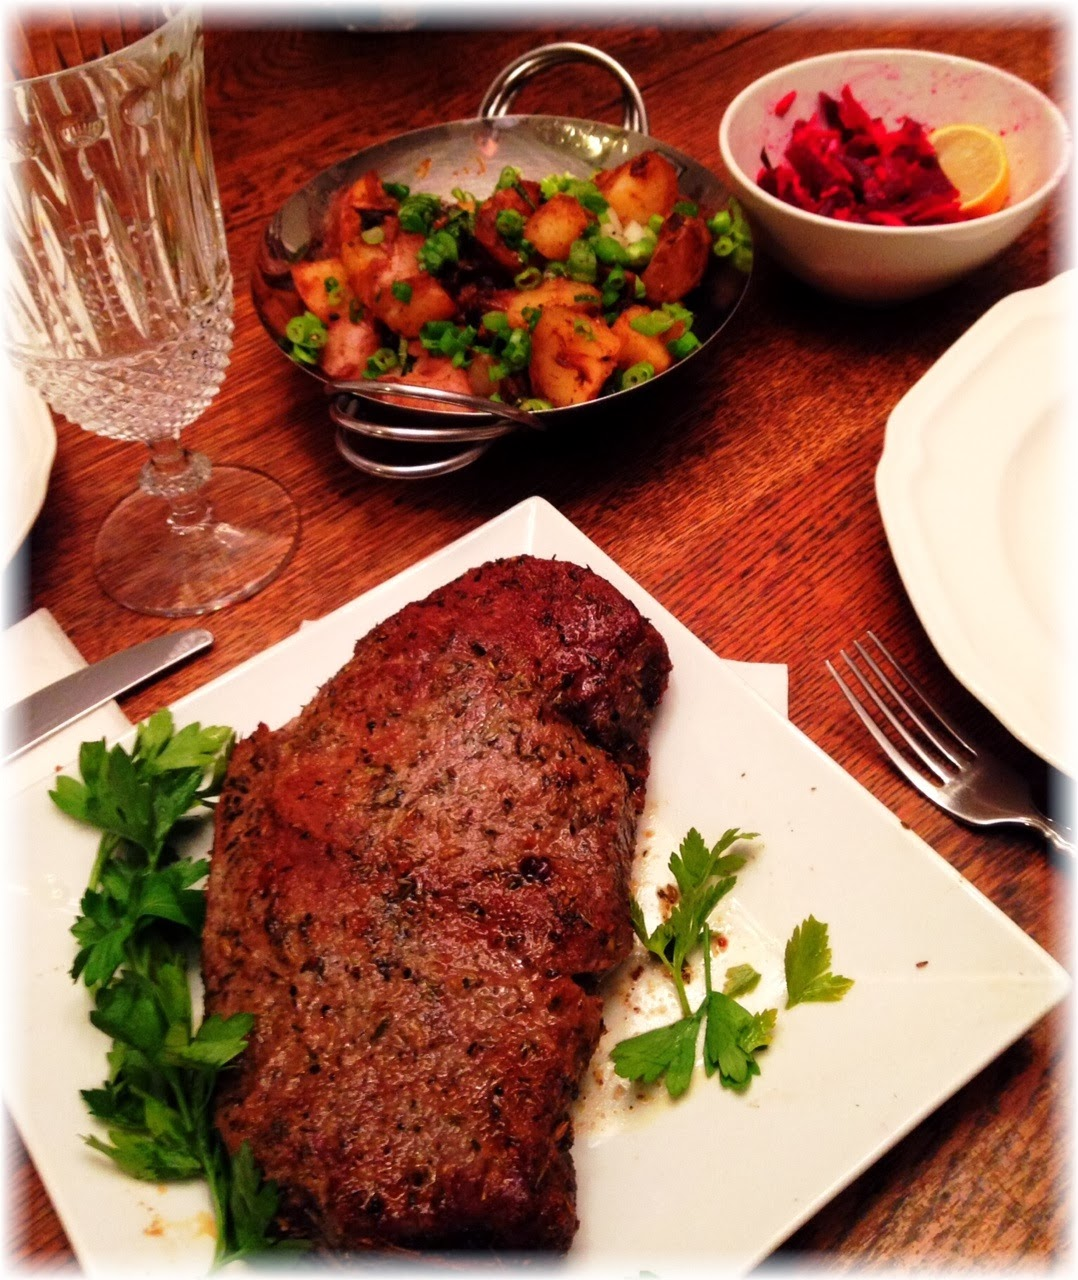 ... with Herb & Spice Rub, Savory Potatoes, and a Carrot & Beet Salad